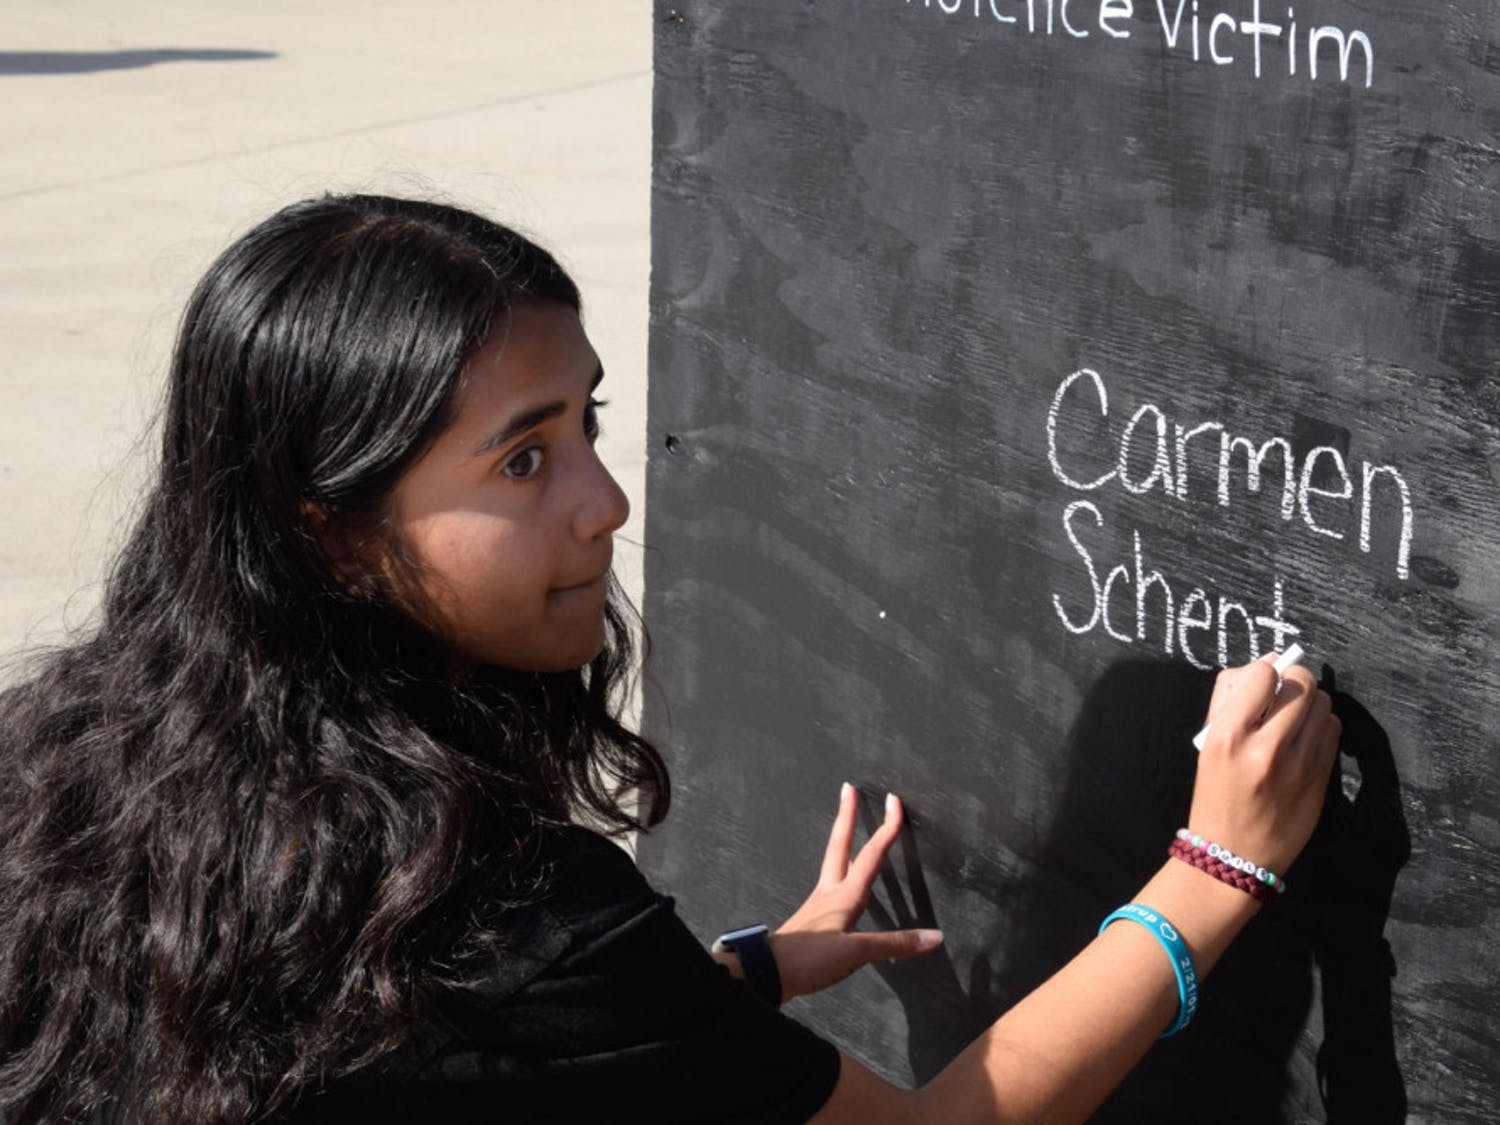 MSD alum Anisha Saripalli, an 18-year-old biomedical engineering sophomore and the March for Our Lives Gainesville treasurer, writes the name of her friend down on the gun violence victim board. Carmen Schentrup was a Marjory Stoneman Douglas student who died in the shooting just days after she was accepted into UF.